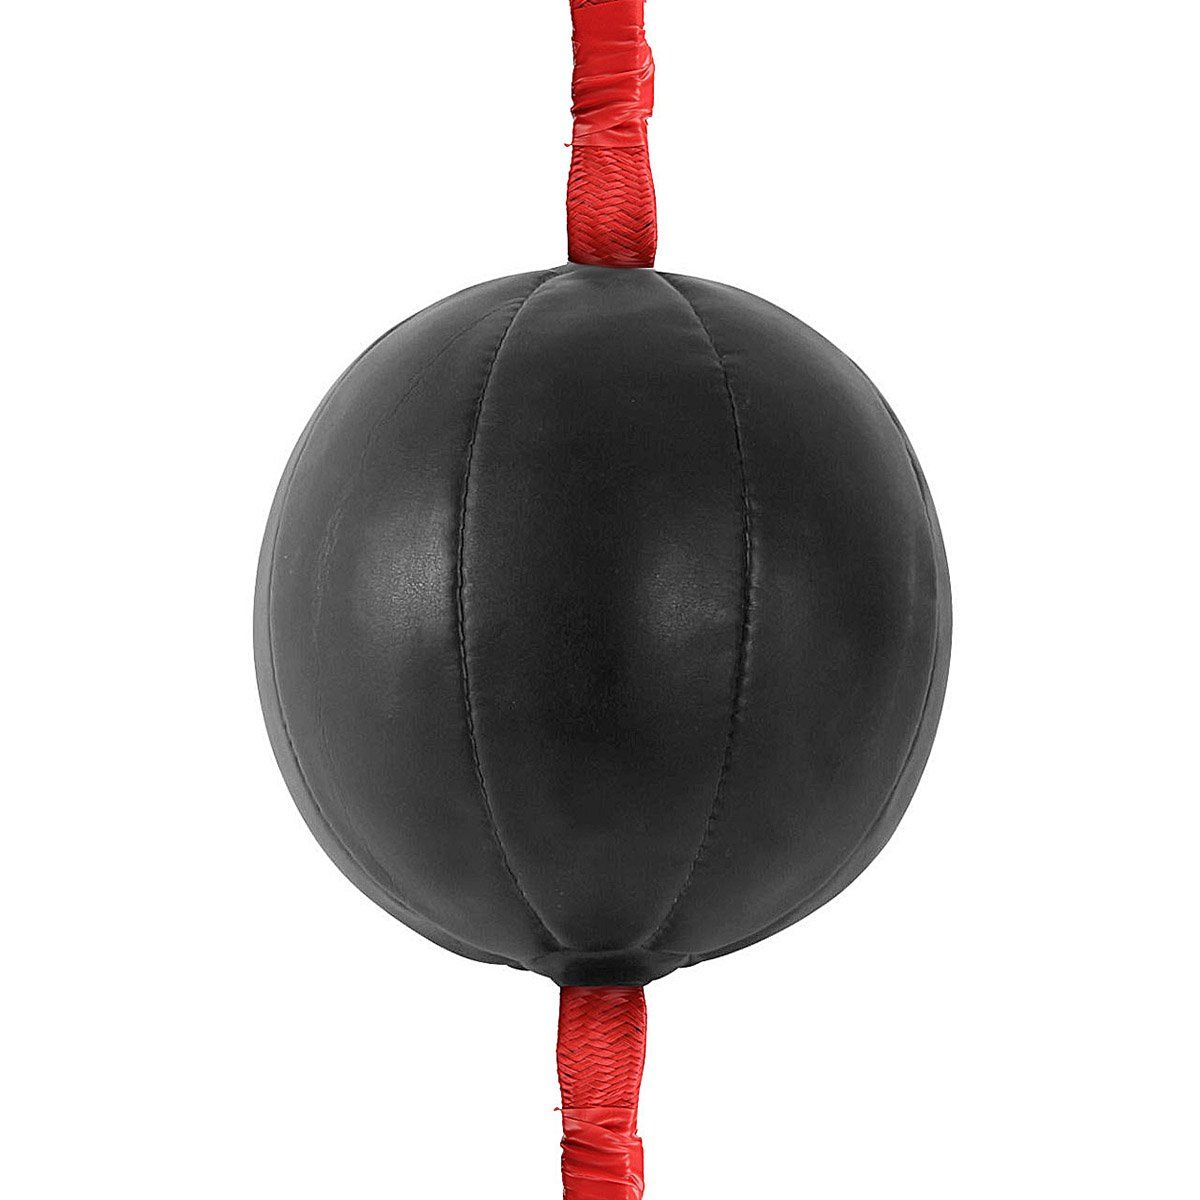 Double End Boxing Training Speed Ball Workout Fitness Punching Equipment Speed Ball Boxing Training Ball Exercises